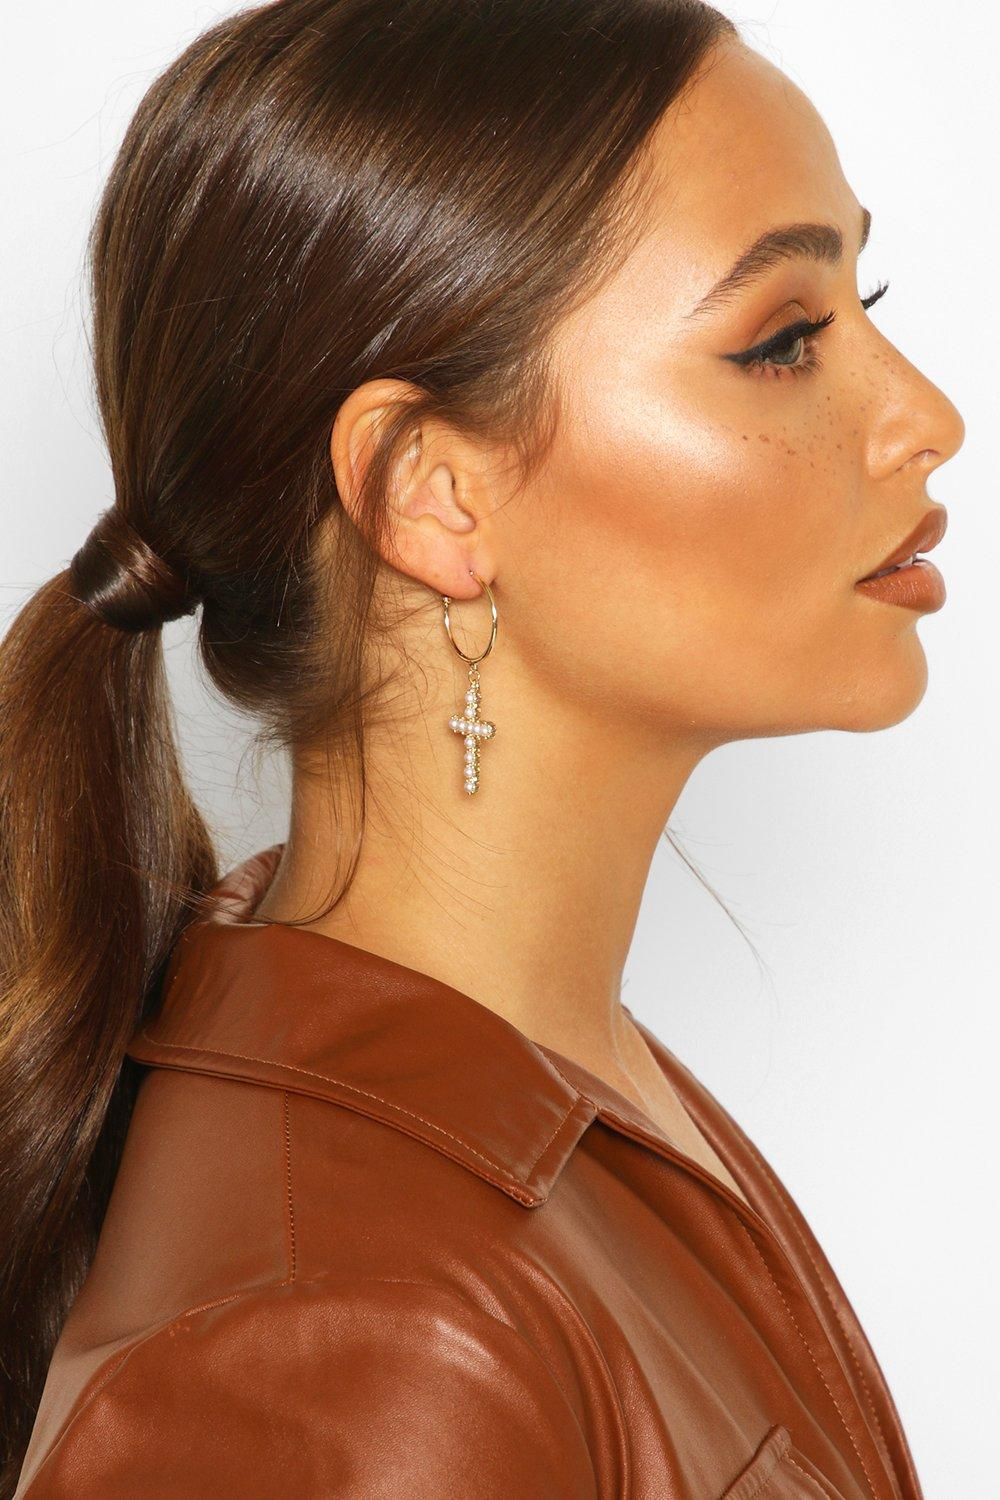 boohoo Womens Pearl Cross Statement Earrings - Metallics - One Size, Metallics